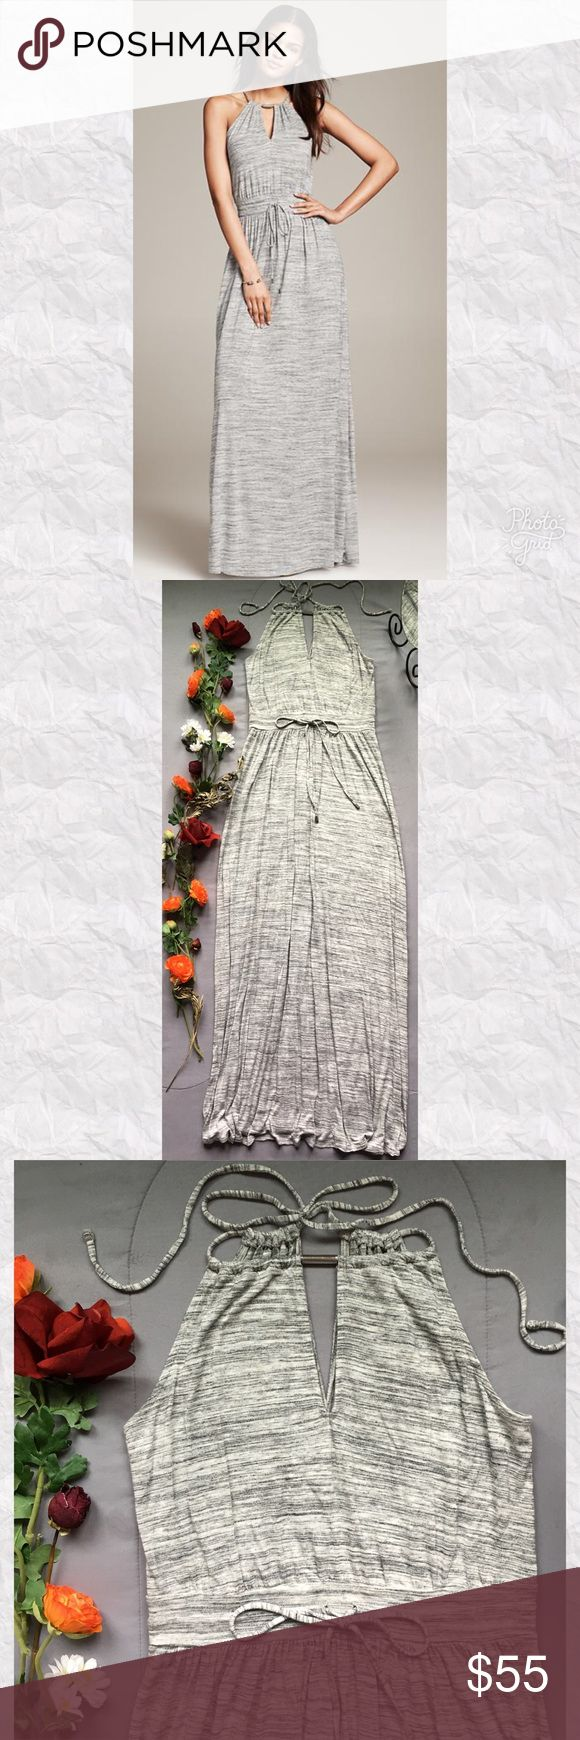 """Banana Republic Heather Gray Knit Halter Maxi *Condition: Excellent. Minimal wash wear. No holes, stains, fading.  *Neckline: Keyhole Halter with Faux silver detail at center *Sleeve Style: Sleeveless *Silhouette: Maxi *Drawstring waistline *Closure: Popover style, ties in back at nape *Slits on both side seams at hem *Pockets: No *Shell: 100% Rayon *Lining: None *Care: Machine wash *Measurements are approx & taken lying flat *Bust: 33"""" *Waist: 28"""" *Hip: 50"""" *Shoulder to Hem: 57"""" *Slits: 18""""…"""